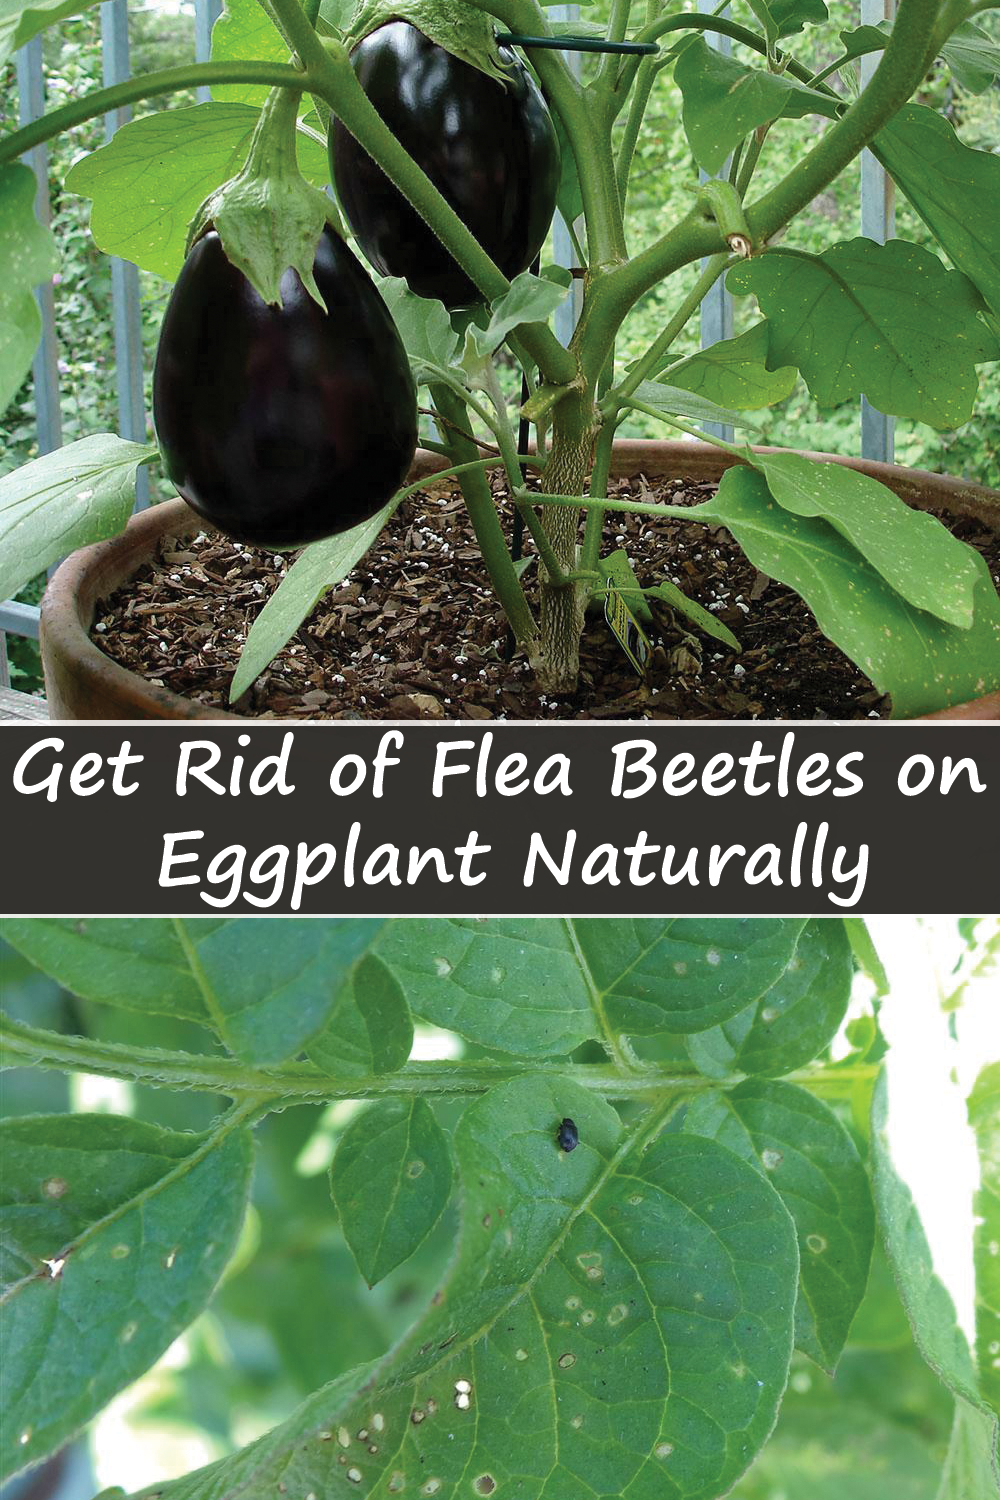 How To Get Rid Of Flea Beetles In House